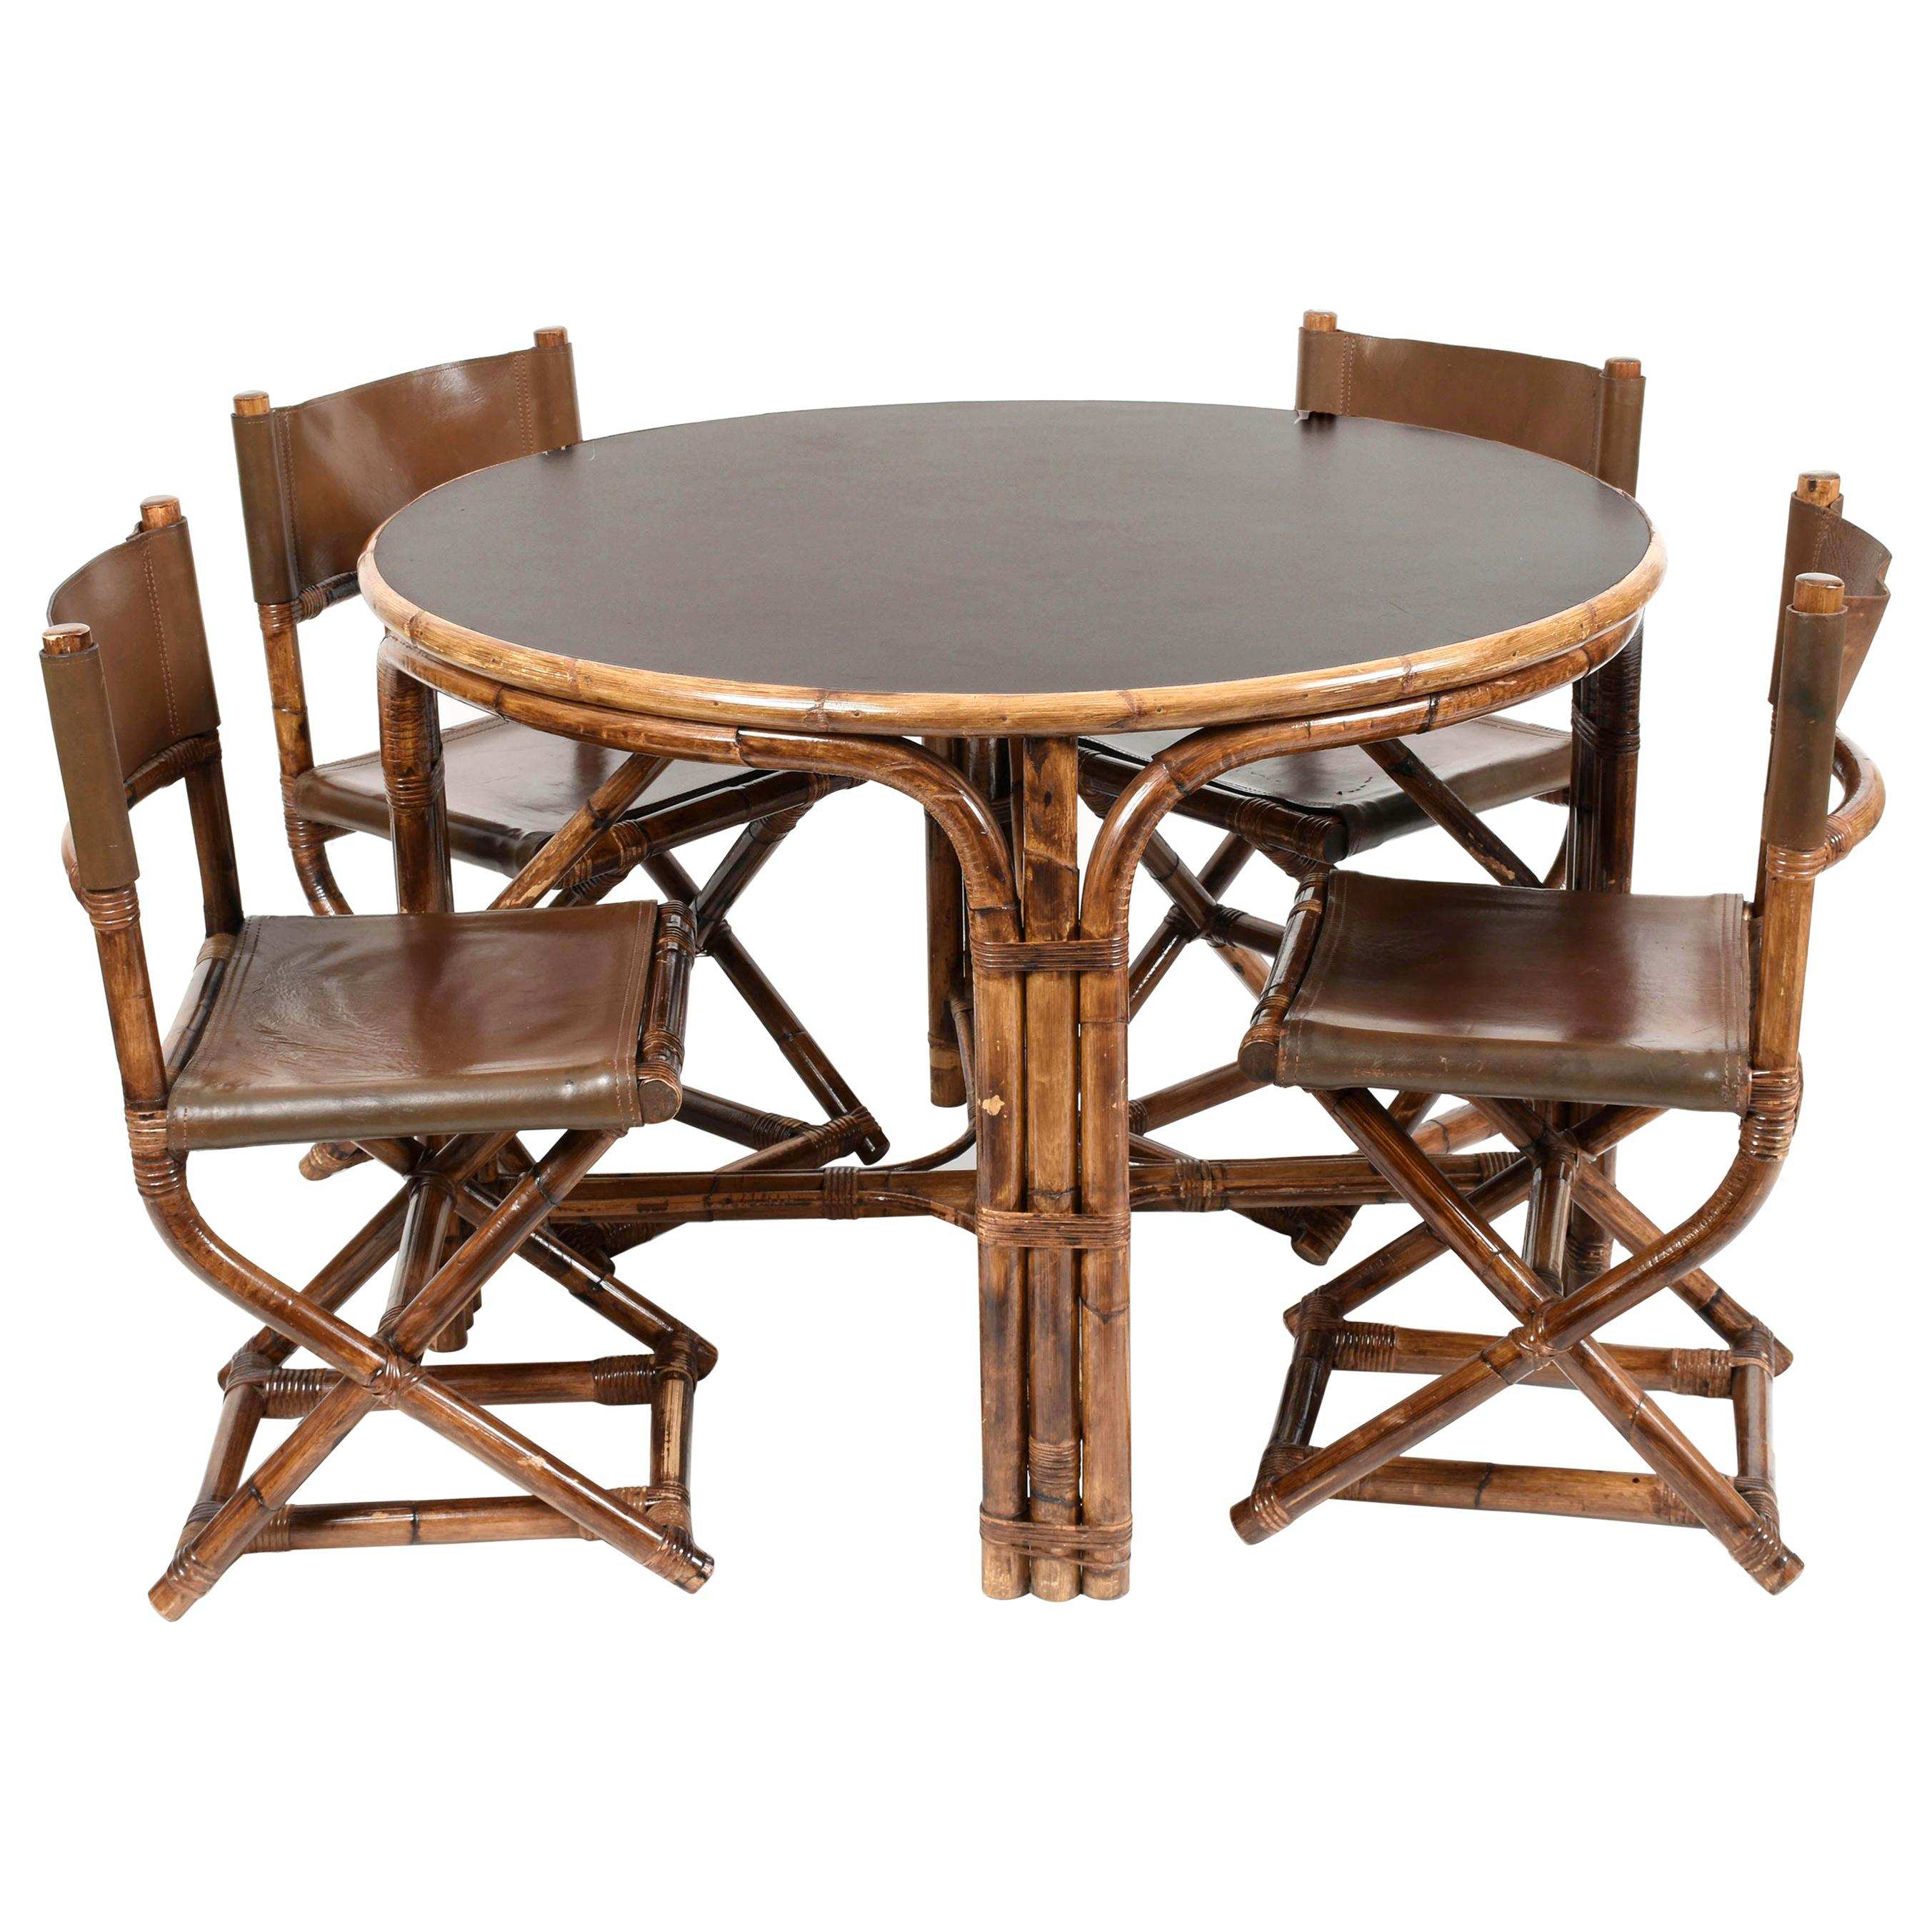 Midcentury Bamboo, Formica and Brown Leather Italian Table and Four Chairs 1960s